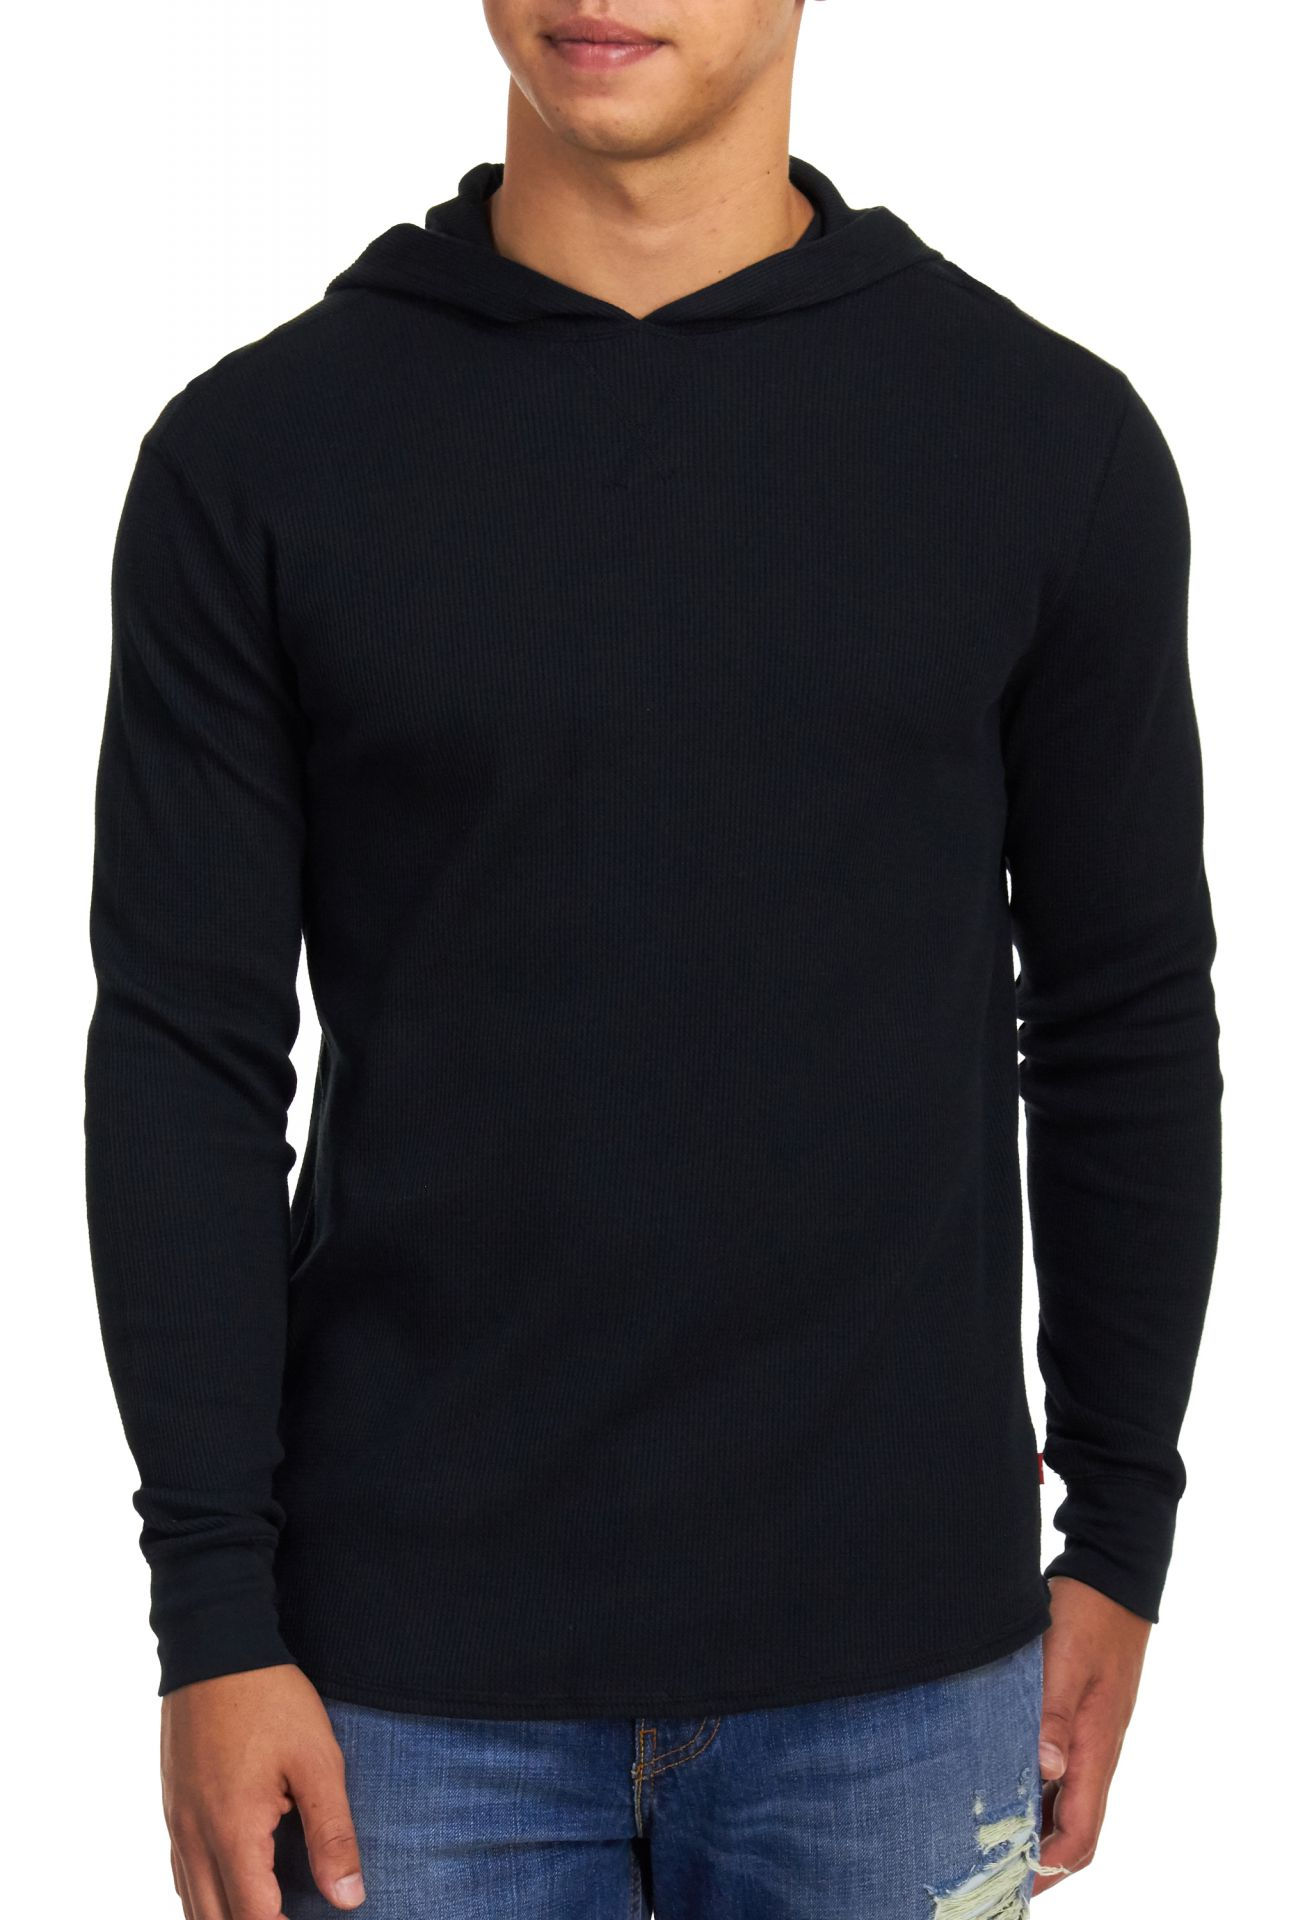 Image of Levi's Men's Corrado Thermal Hoody - Caviar - Small